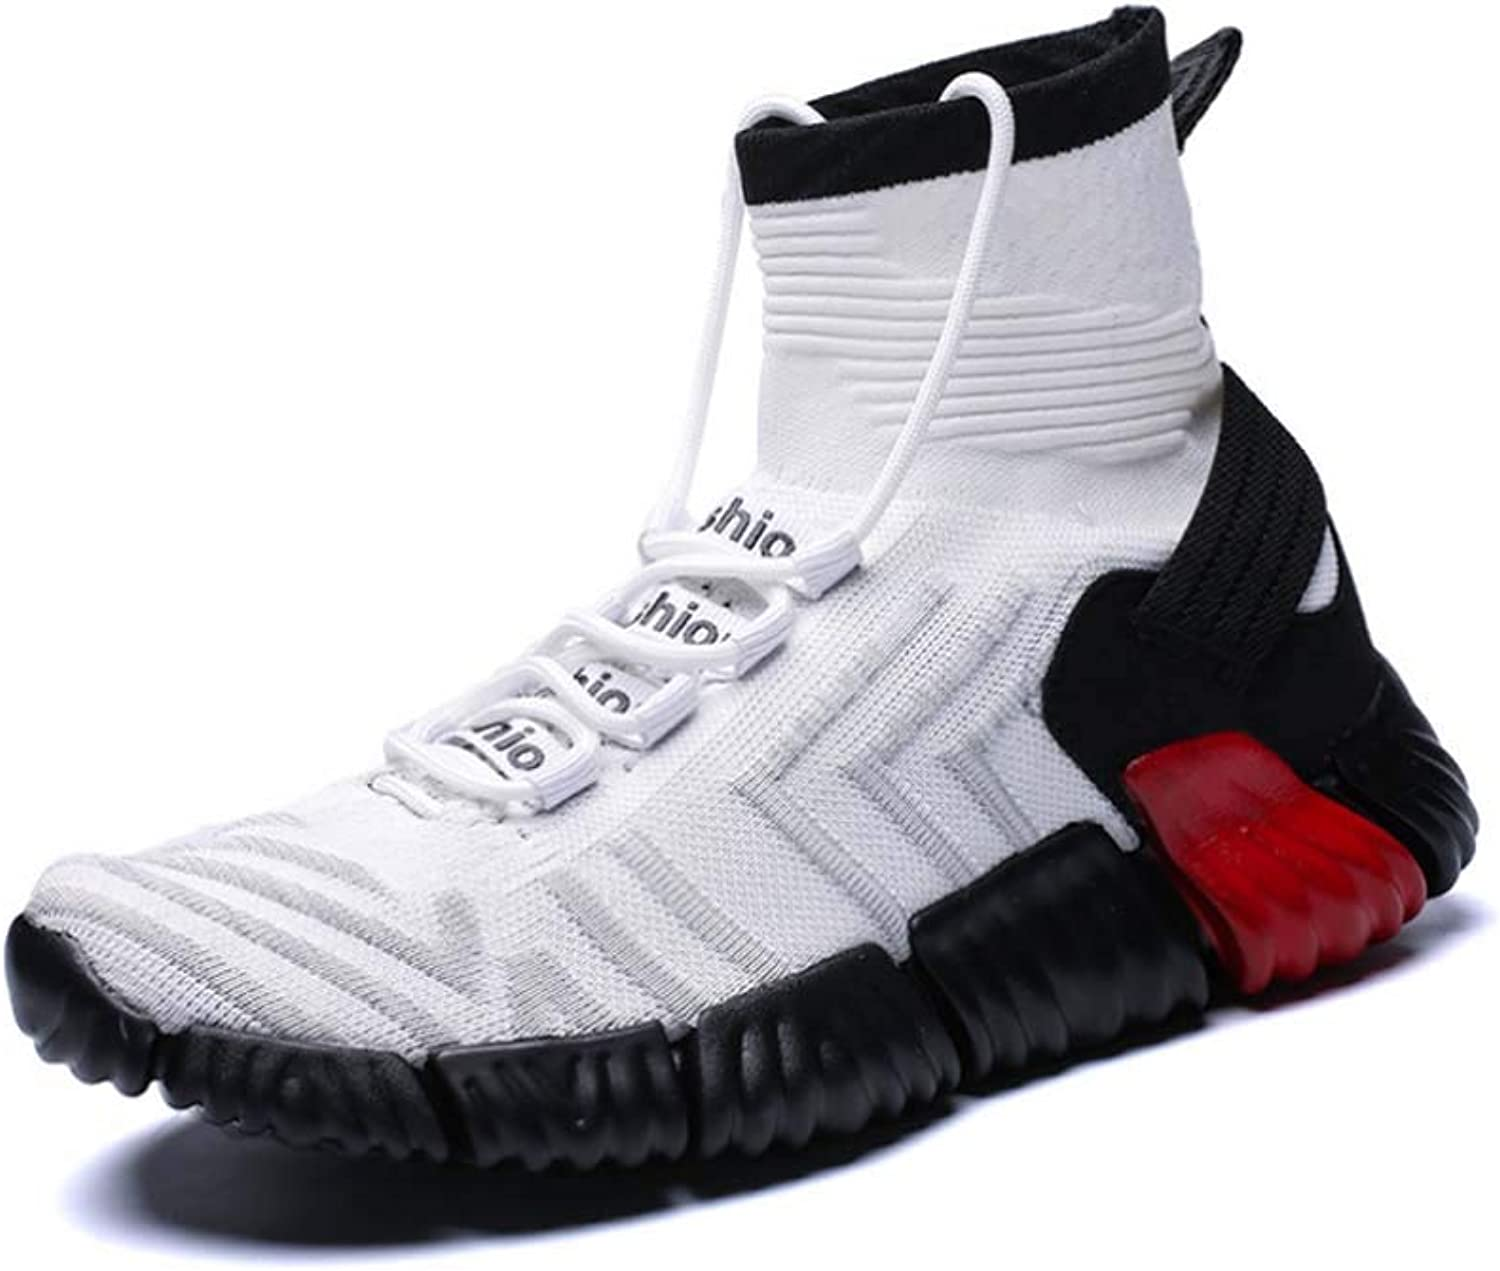 Men Sports shoes,Winter New Lightweight Flying Woven shoes Casual Increase Socks shoes Hi-Top Running shoes